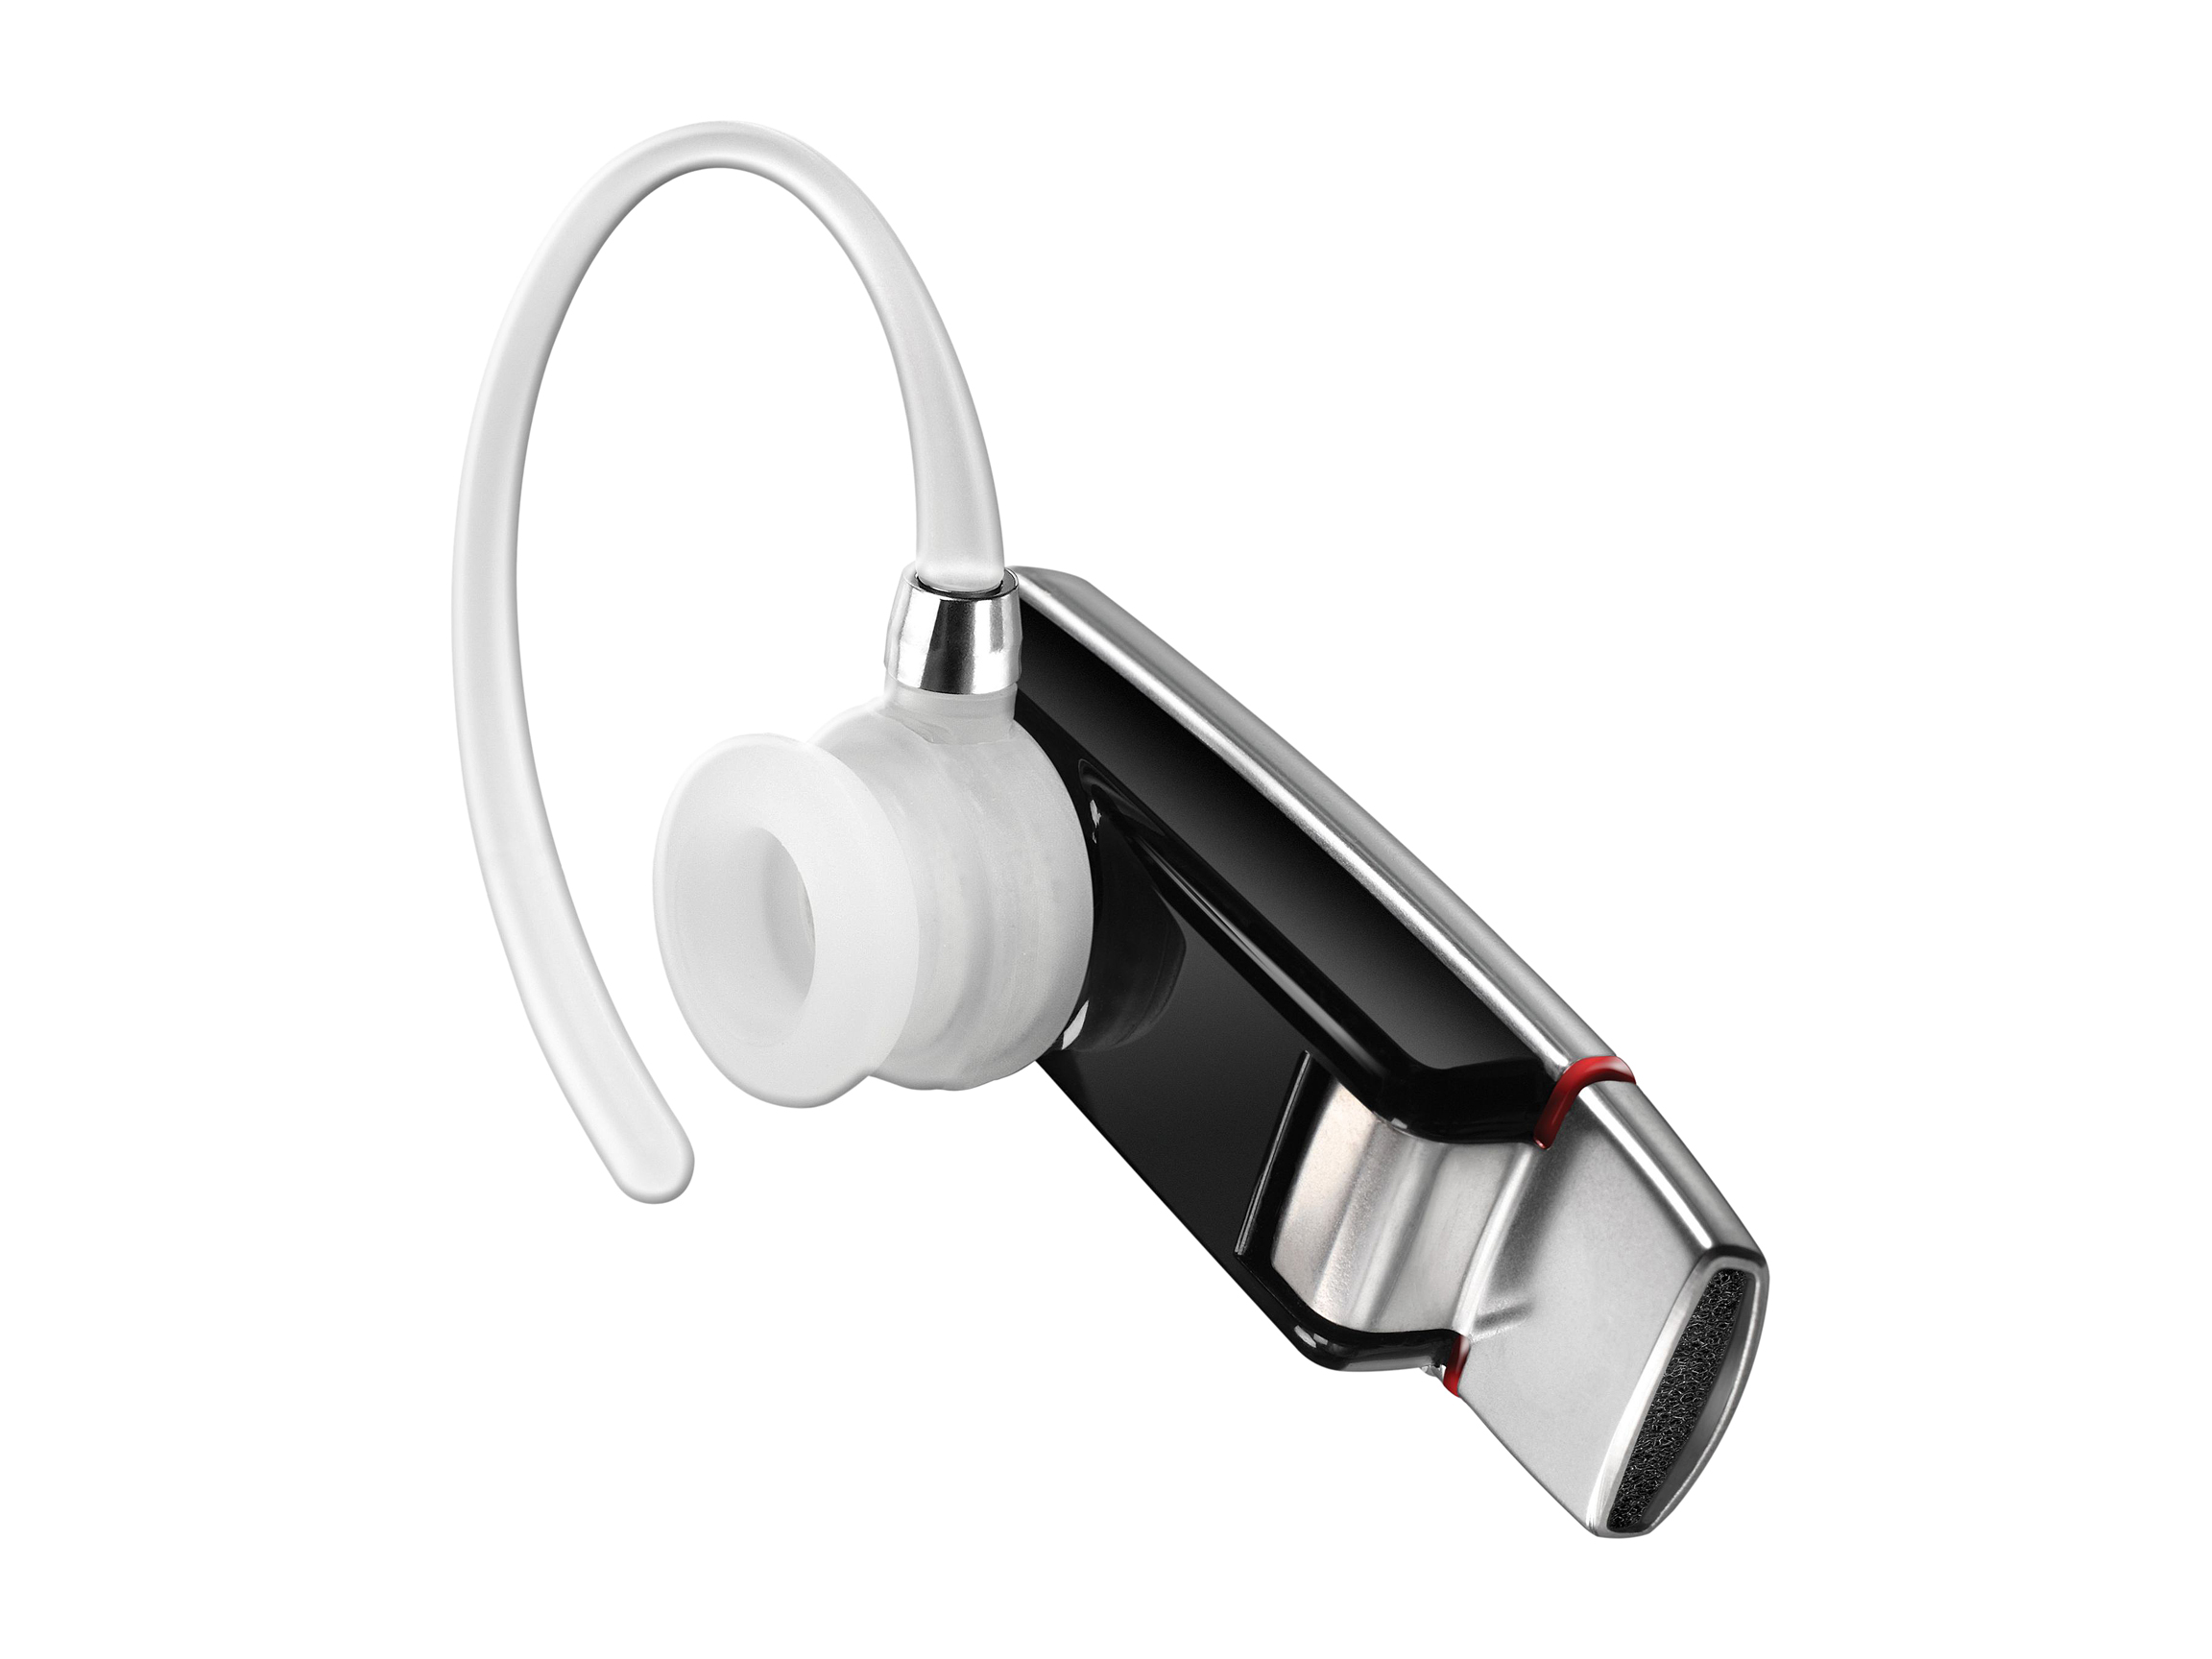 Motorola 89504N Motorola HZ720 Elite Flip Bluetooth Headset